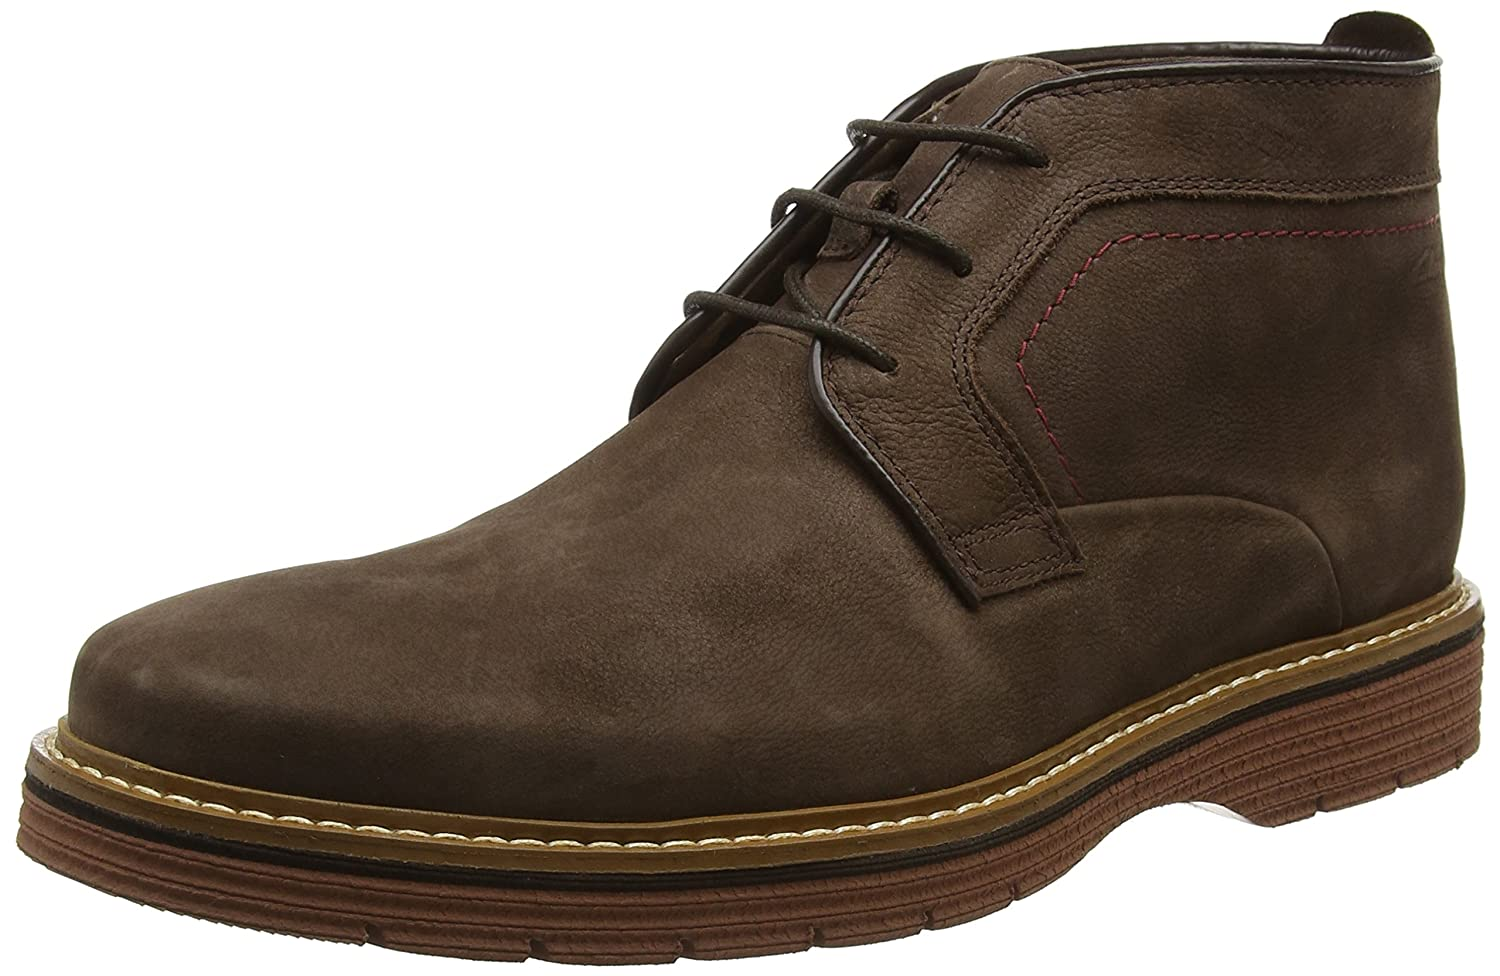 Clarks Newkirk Top, Botines para Hombre, Marrón (Dark Brown Nub), 43 EU